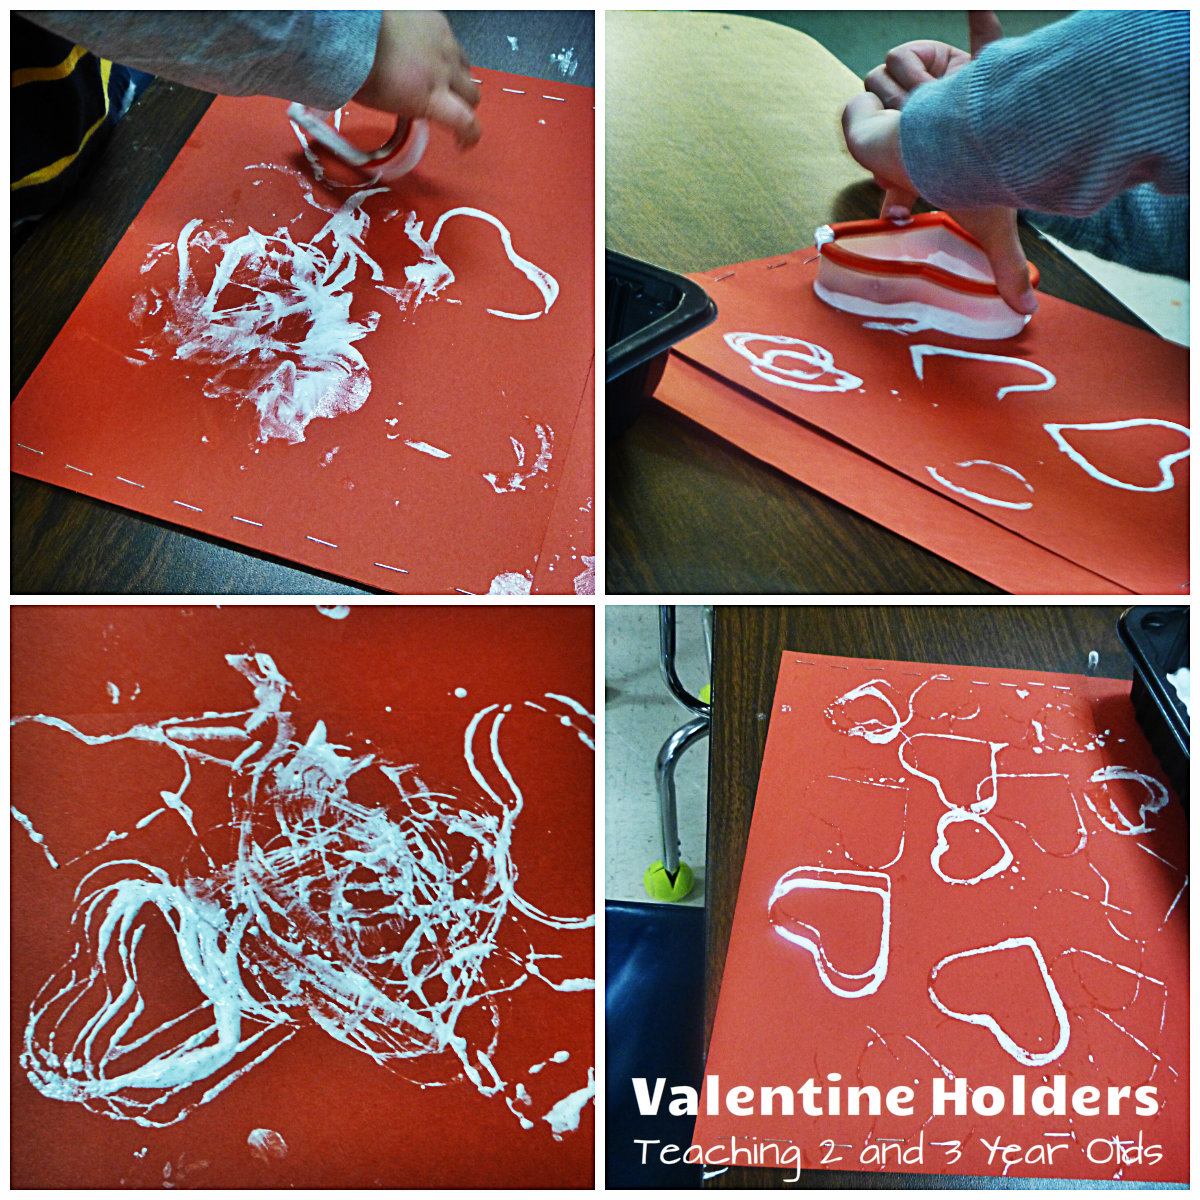 Teaching 2 and 3 Year Olds: Preschool Activities for February